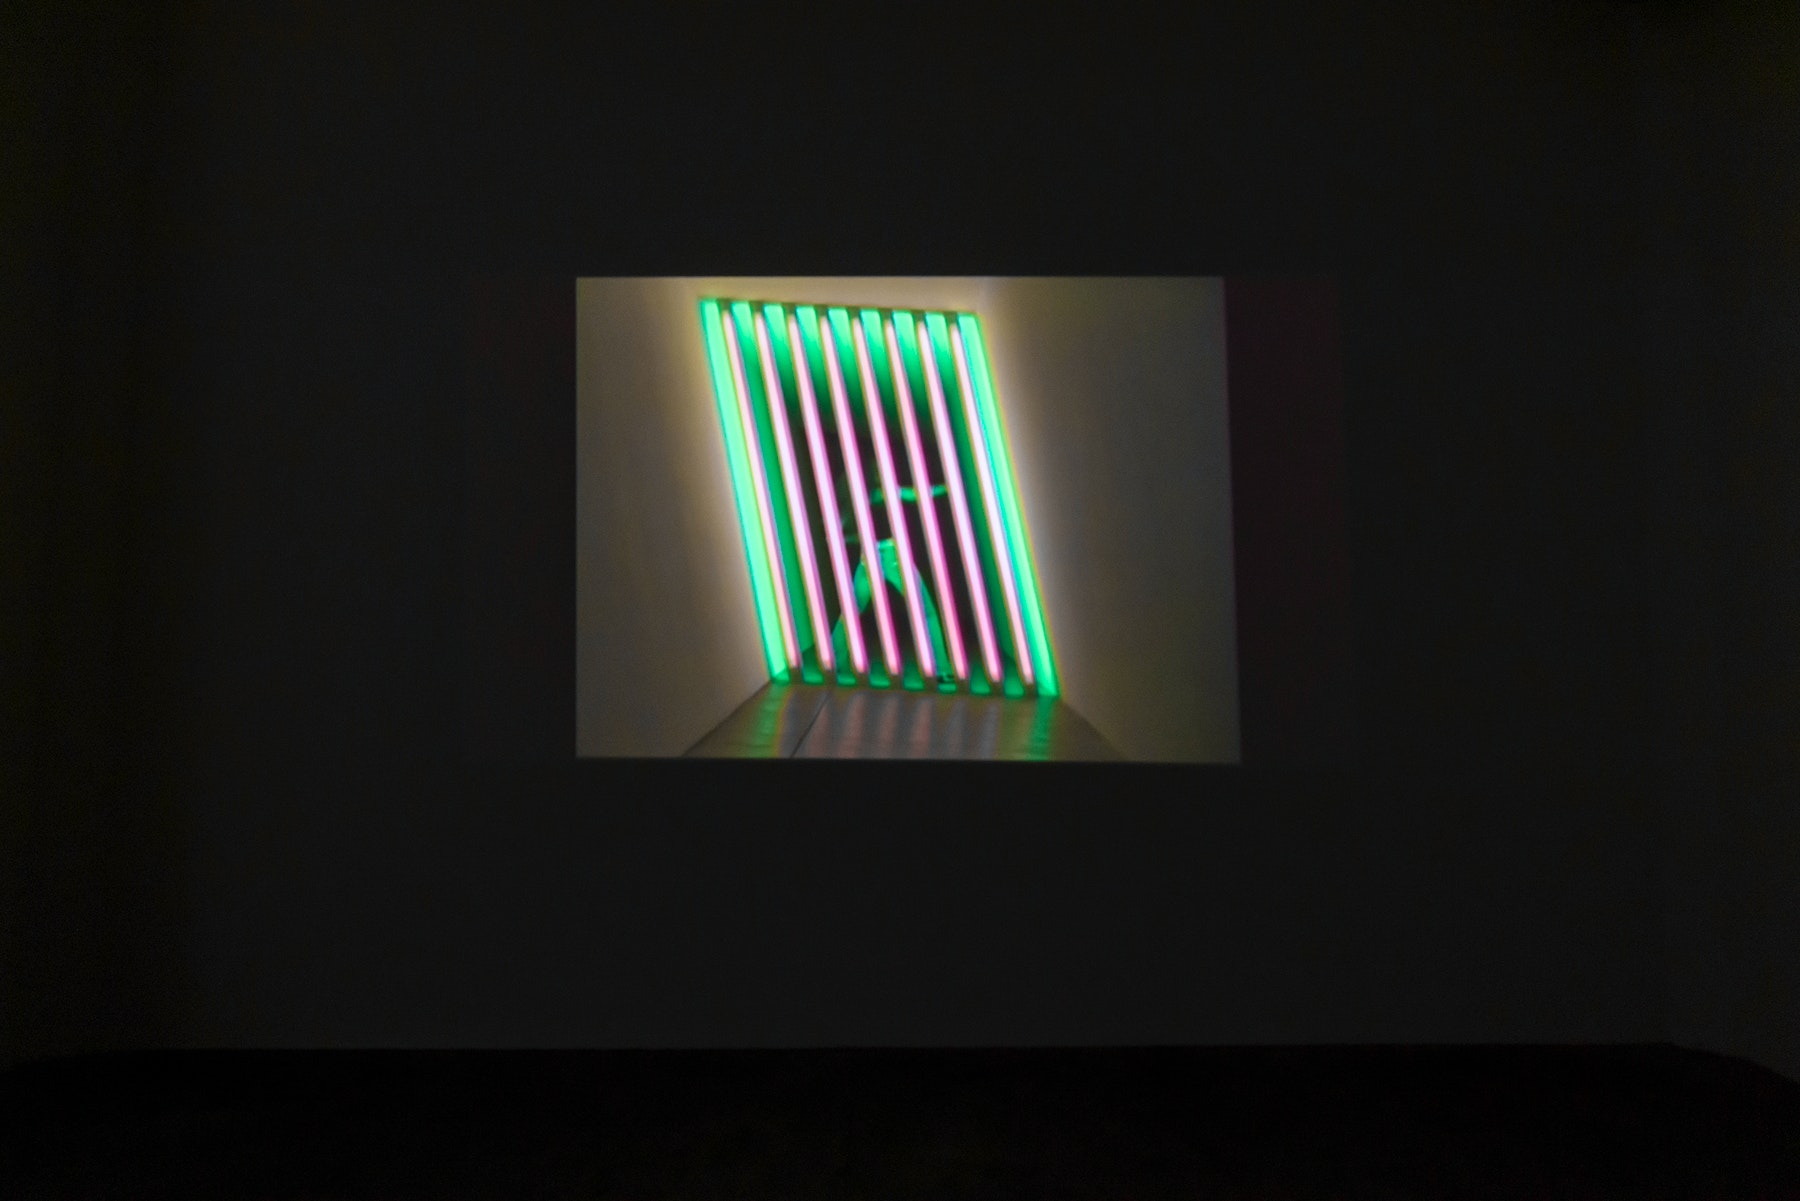 """Andrea Bowers """"Avenging the Ghosts of My Younger Self (Situated Between Minimalist Art and Arcade Games),"""" 2002, (remastered 2021) Single channel video projection (silent, 2:53 min. looped) Dimensions variable Inventory #BOW596 Courtesy of the artist and Vielmetter Los Angeles"""